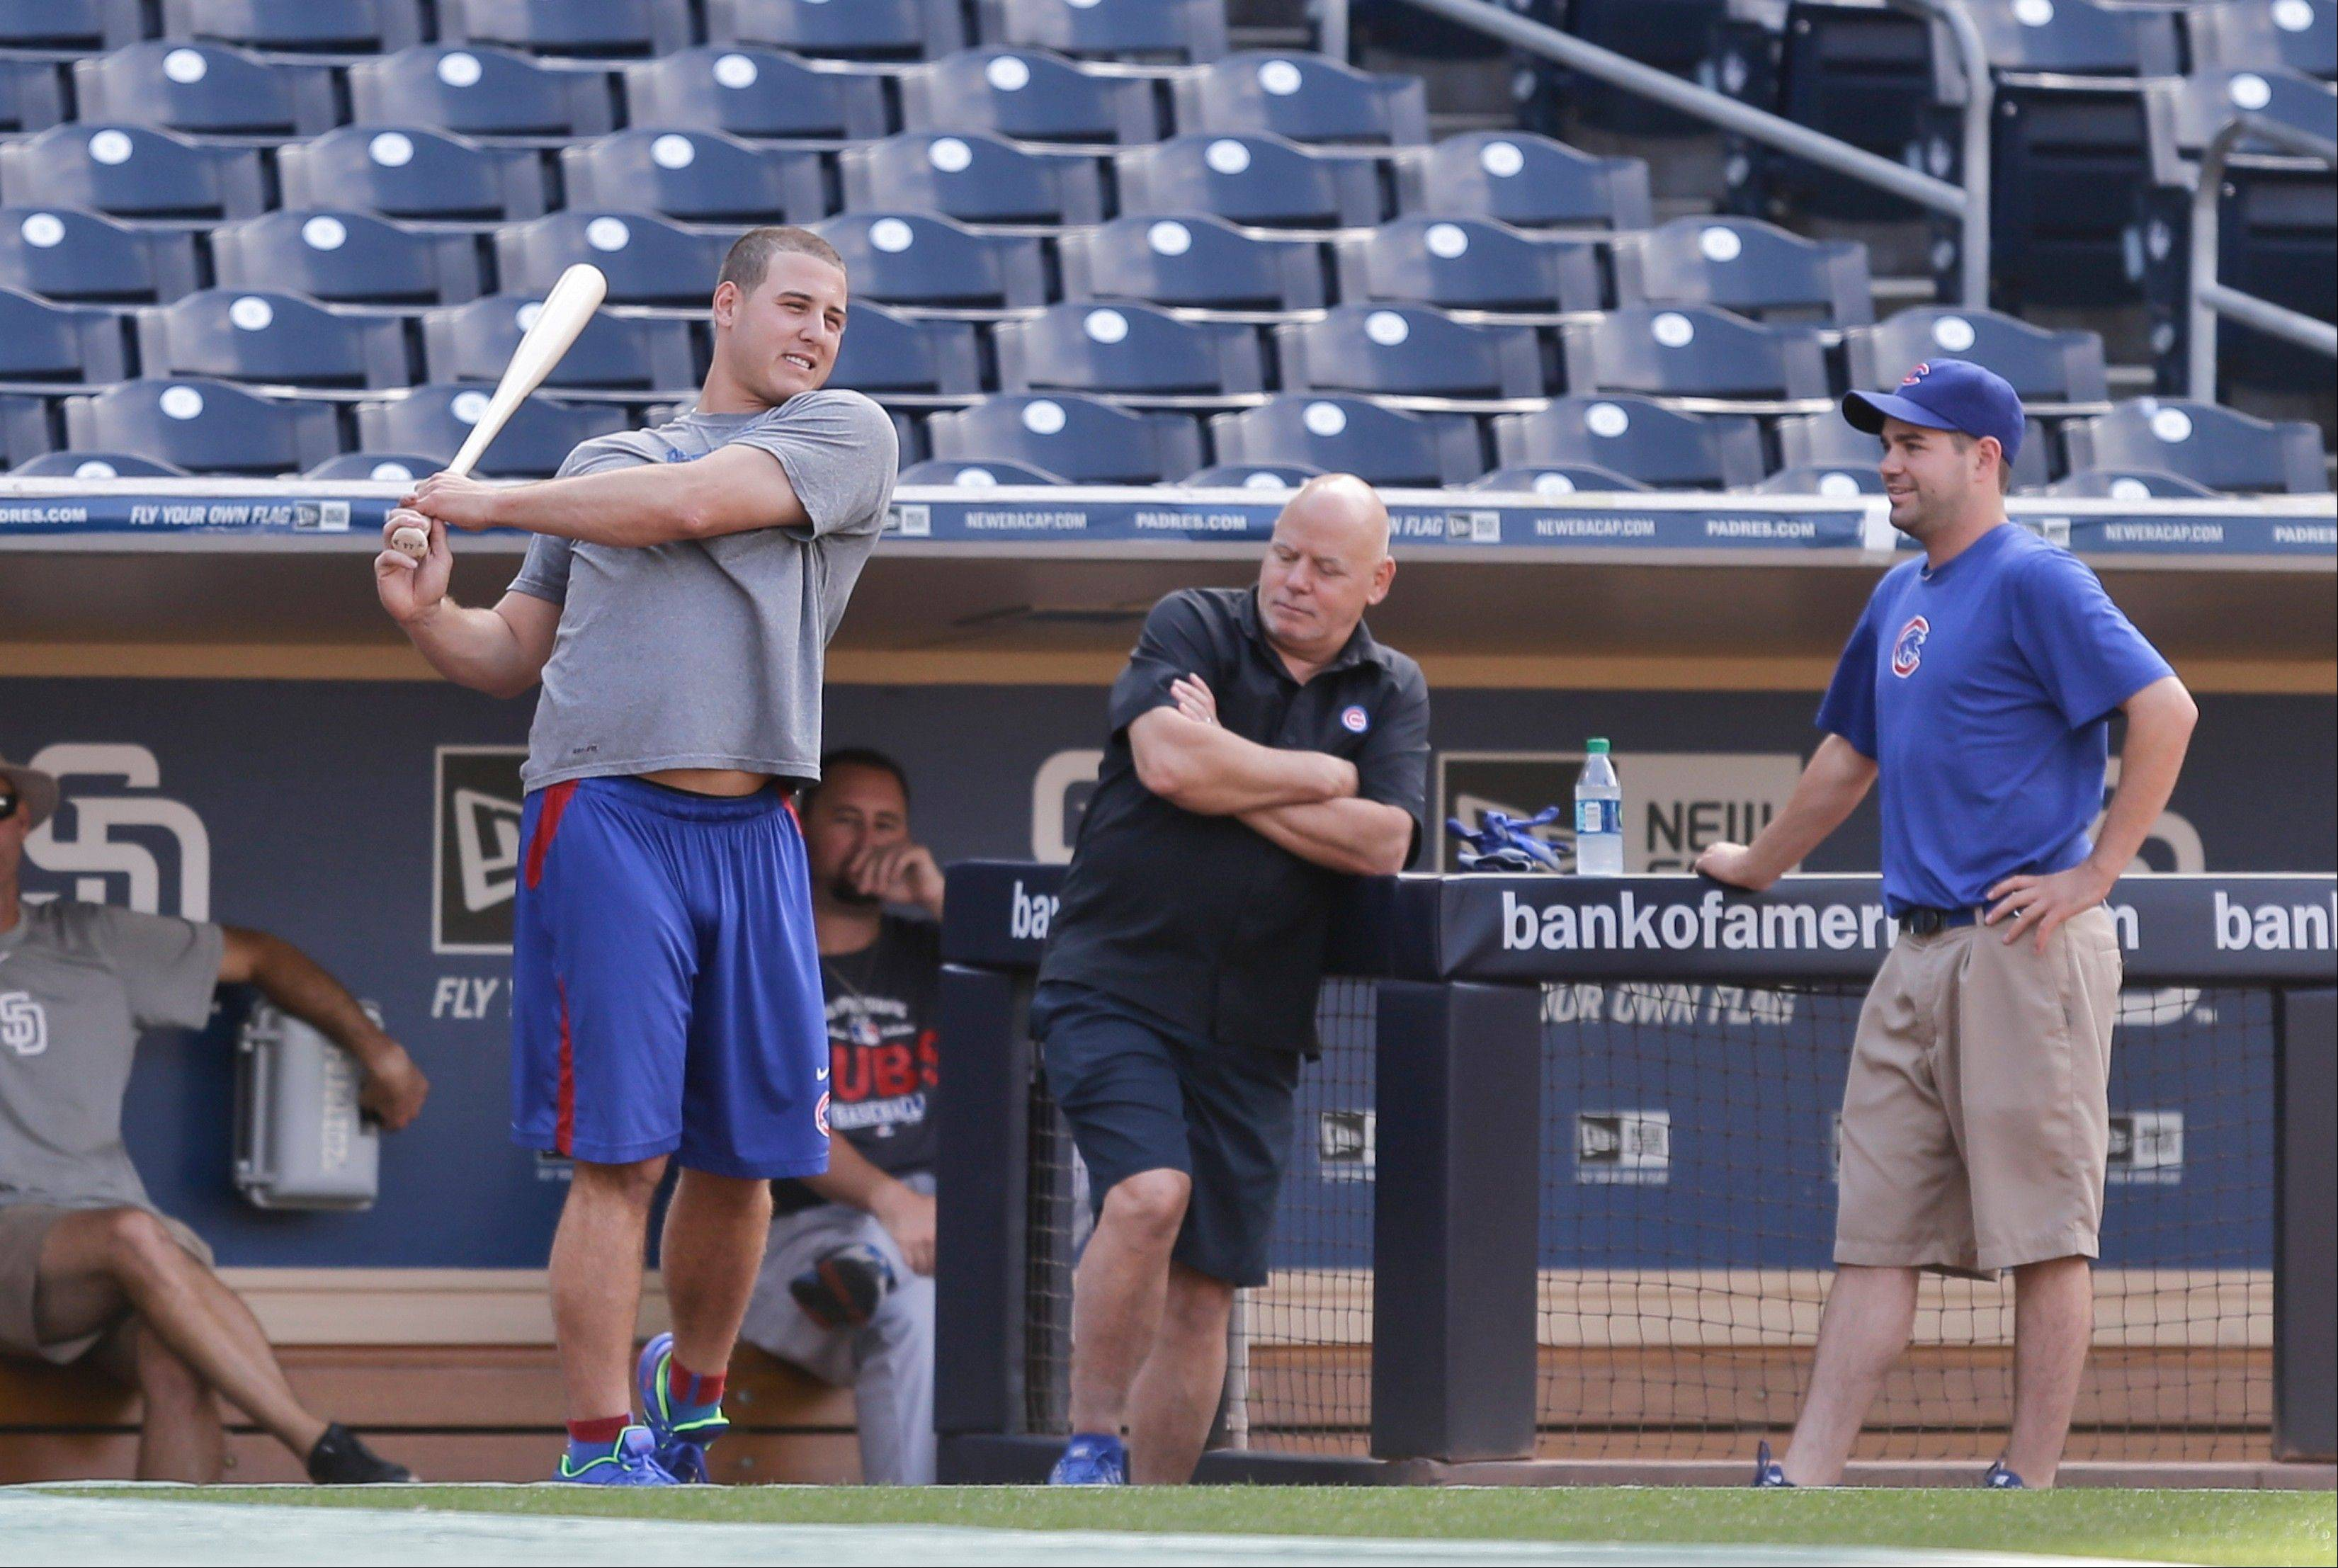 Cubs first baseman Anthony Rizzo, here during warmups in San Diego, understands that baseball is a business with lots of roster changes, but he'll still miss former teammate David DeJesus. Veterans being shipped off to other teams is just one thing of what makes August a challenging month for many teams, says Len Kasper.